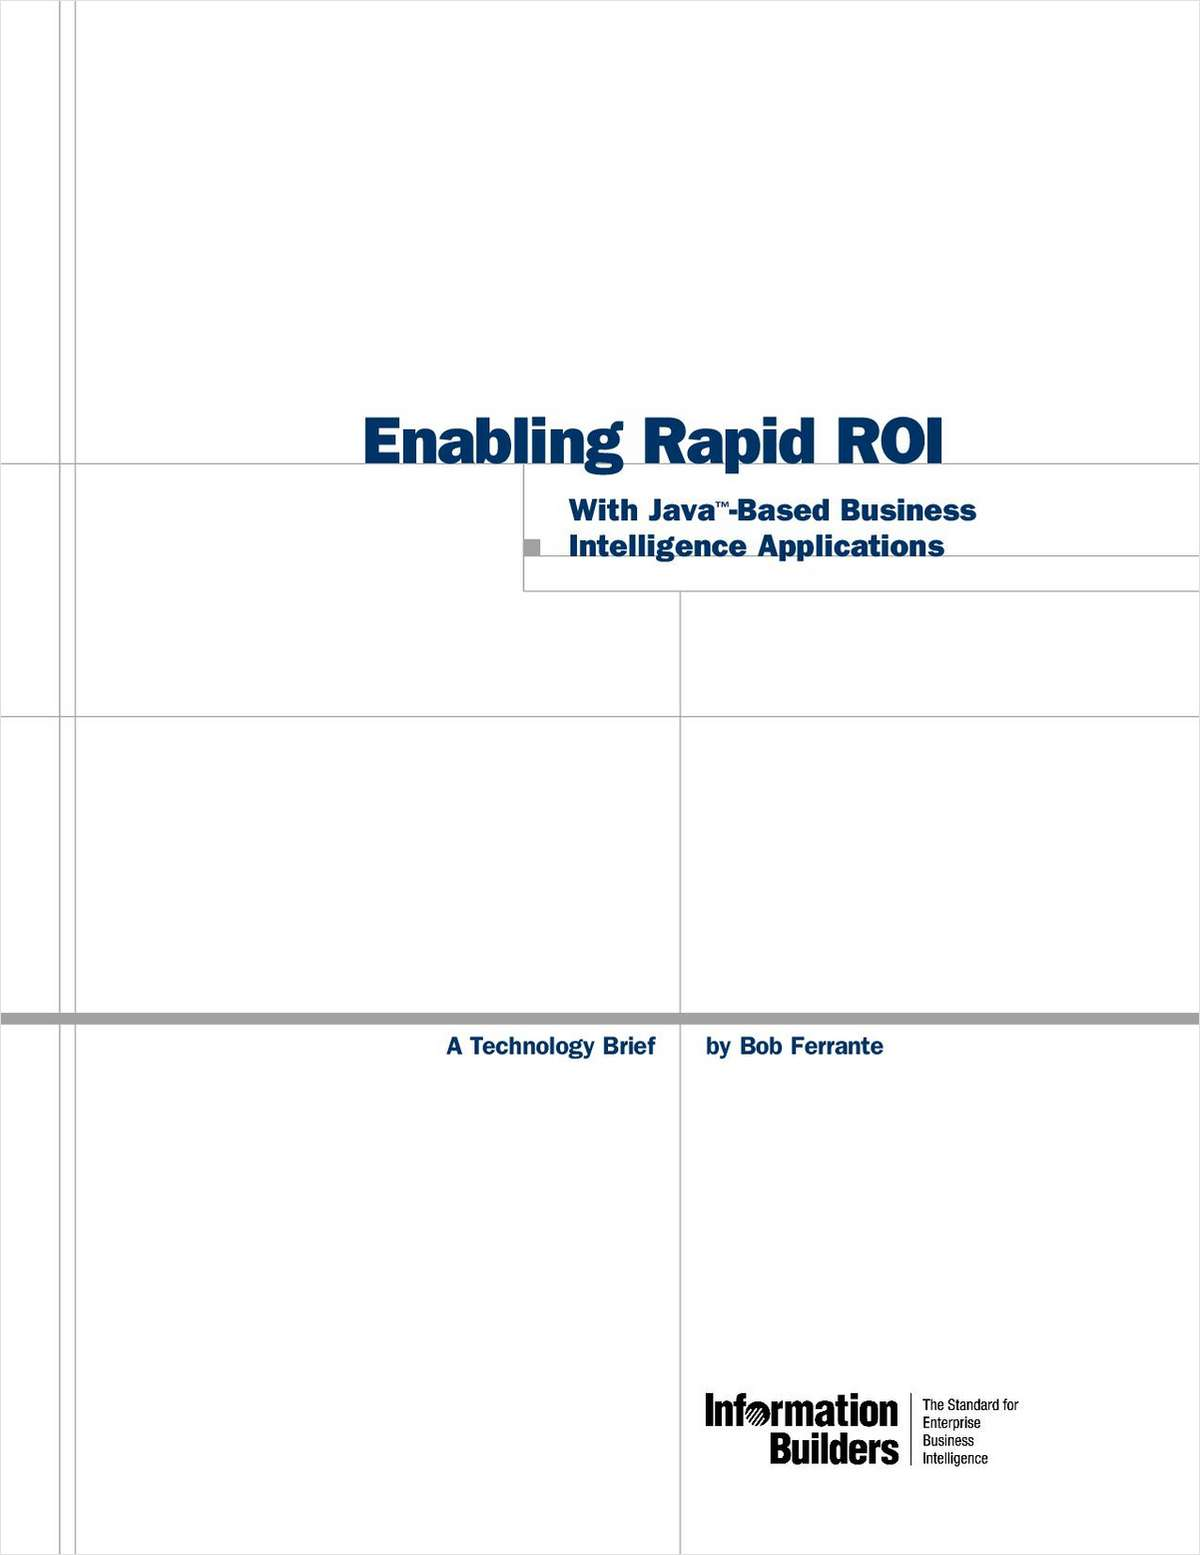 Enabling Rapid ROI: With Java™ - Based Business Intelligence Applications